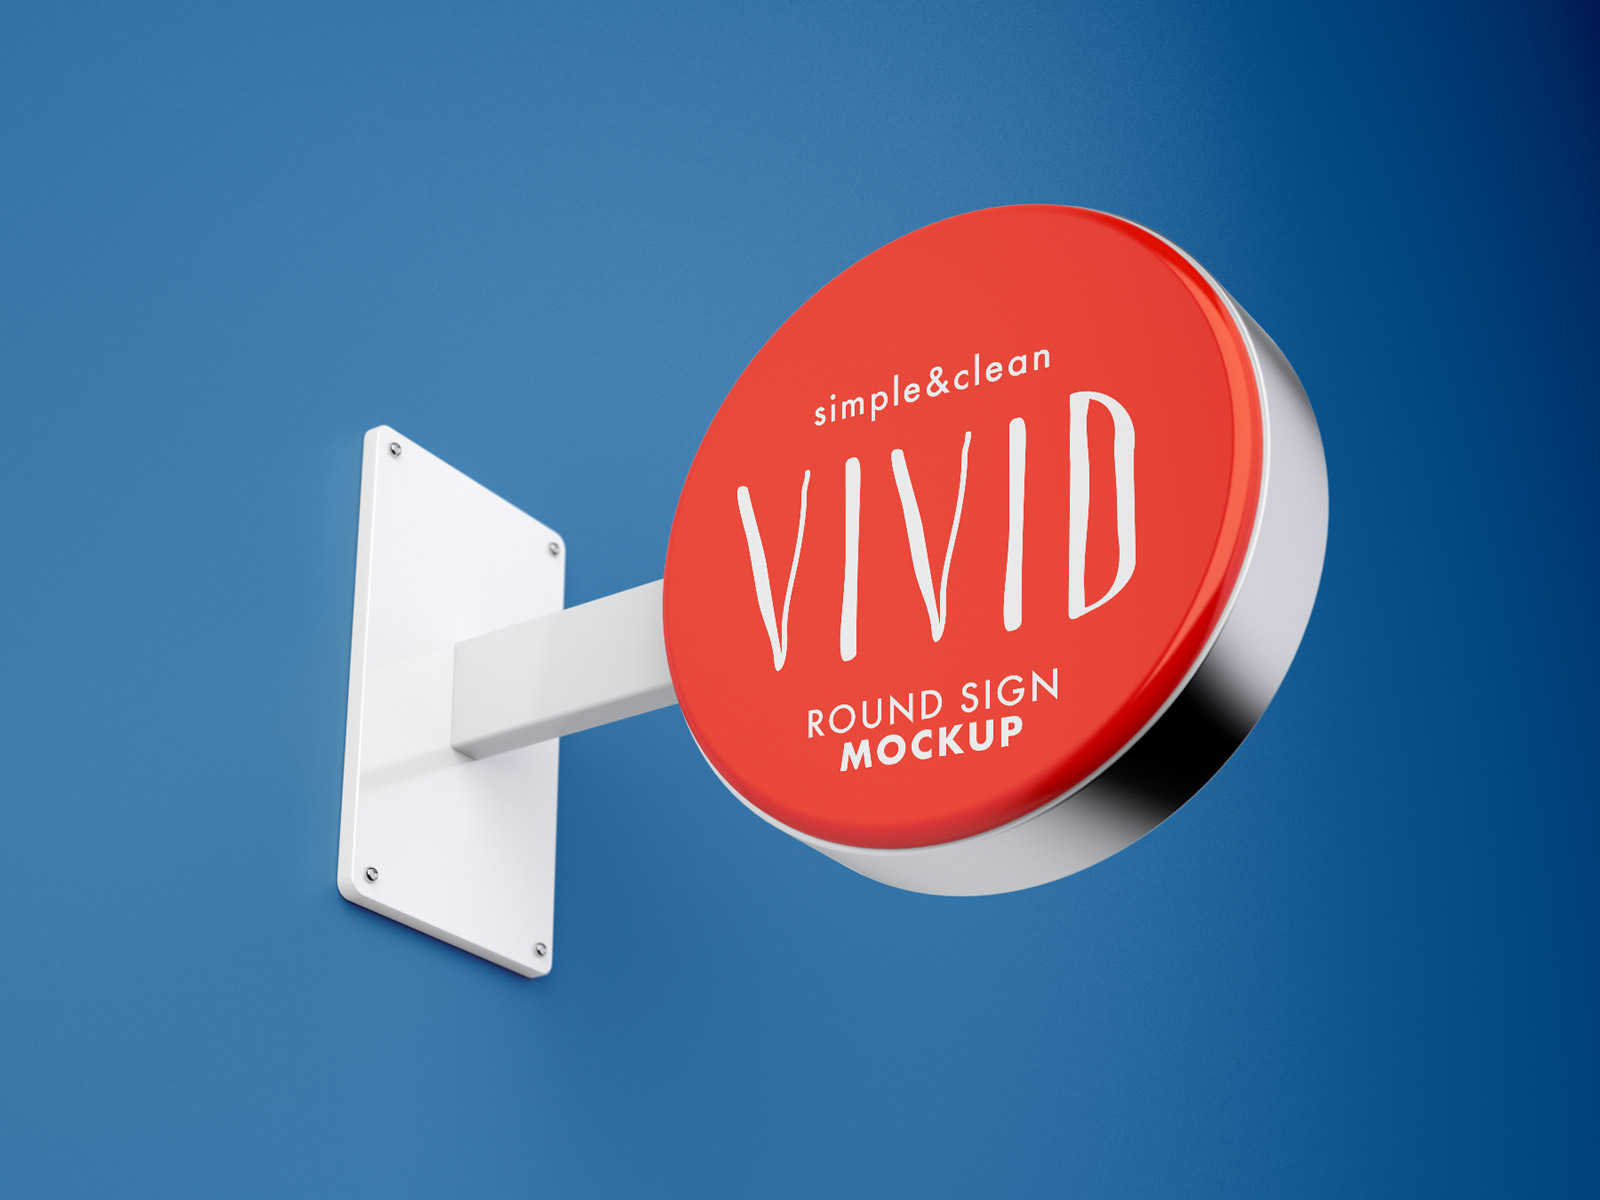 Free-Round-Wall-Mounted-Sign-Mockup-PSD-file-3